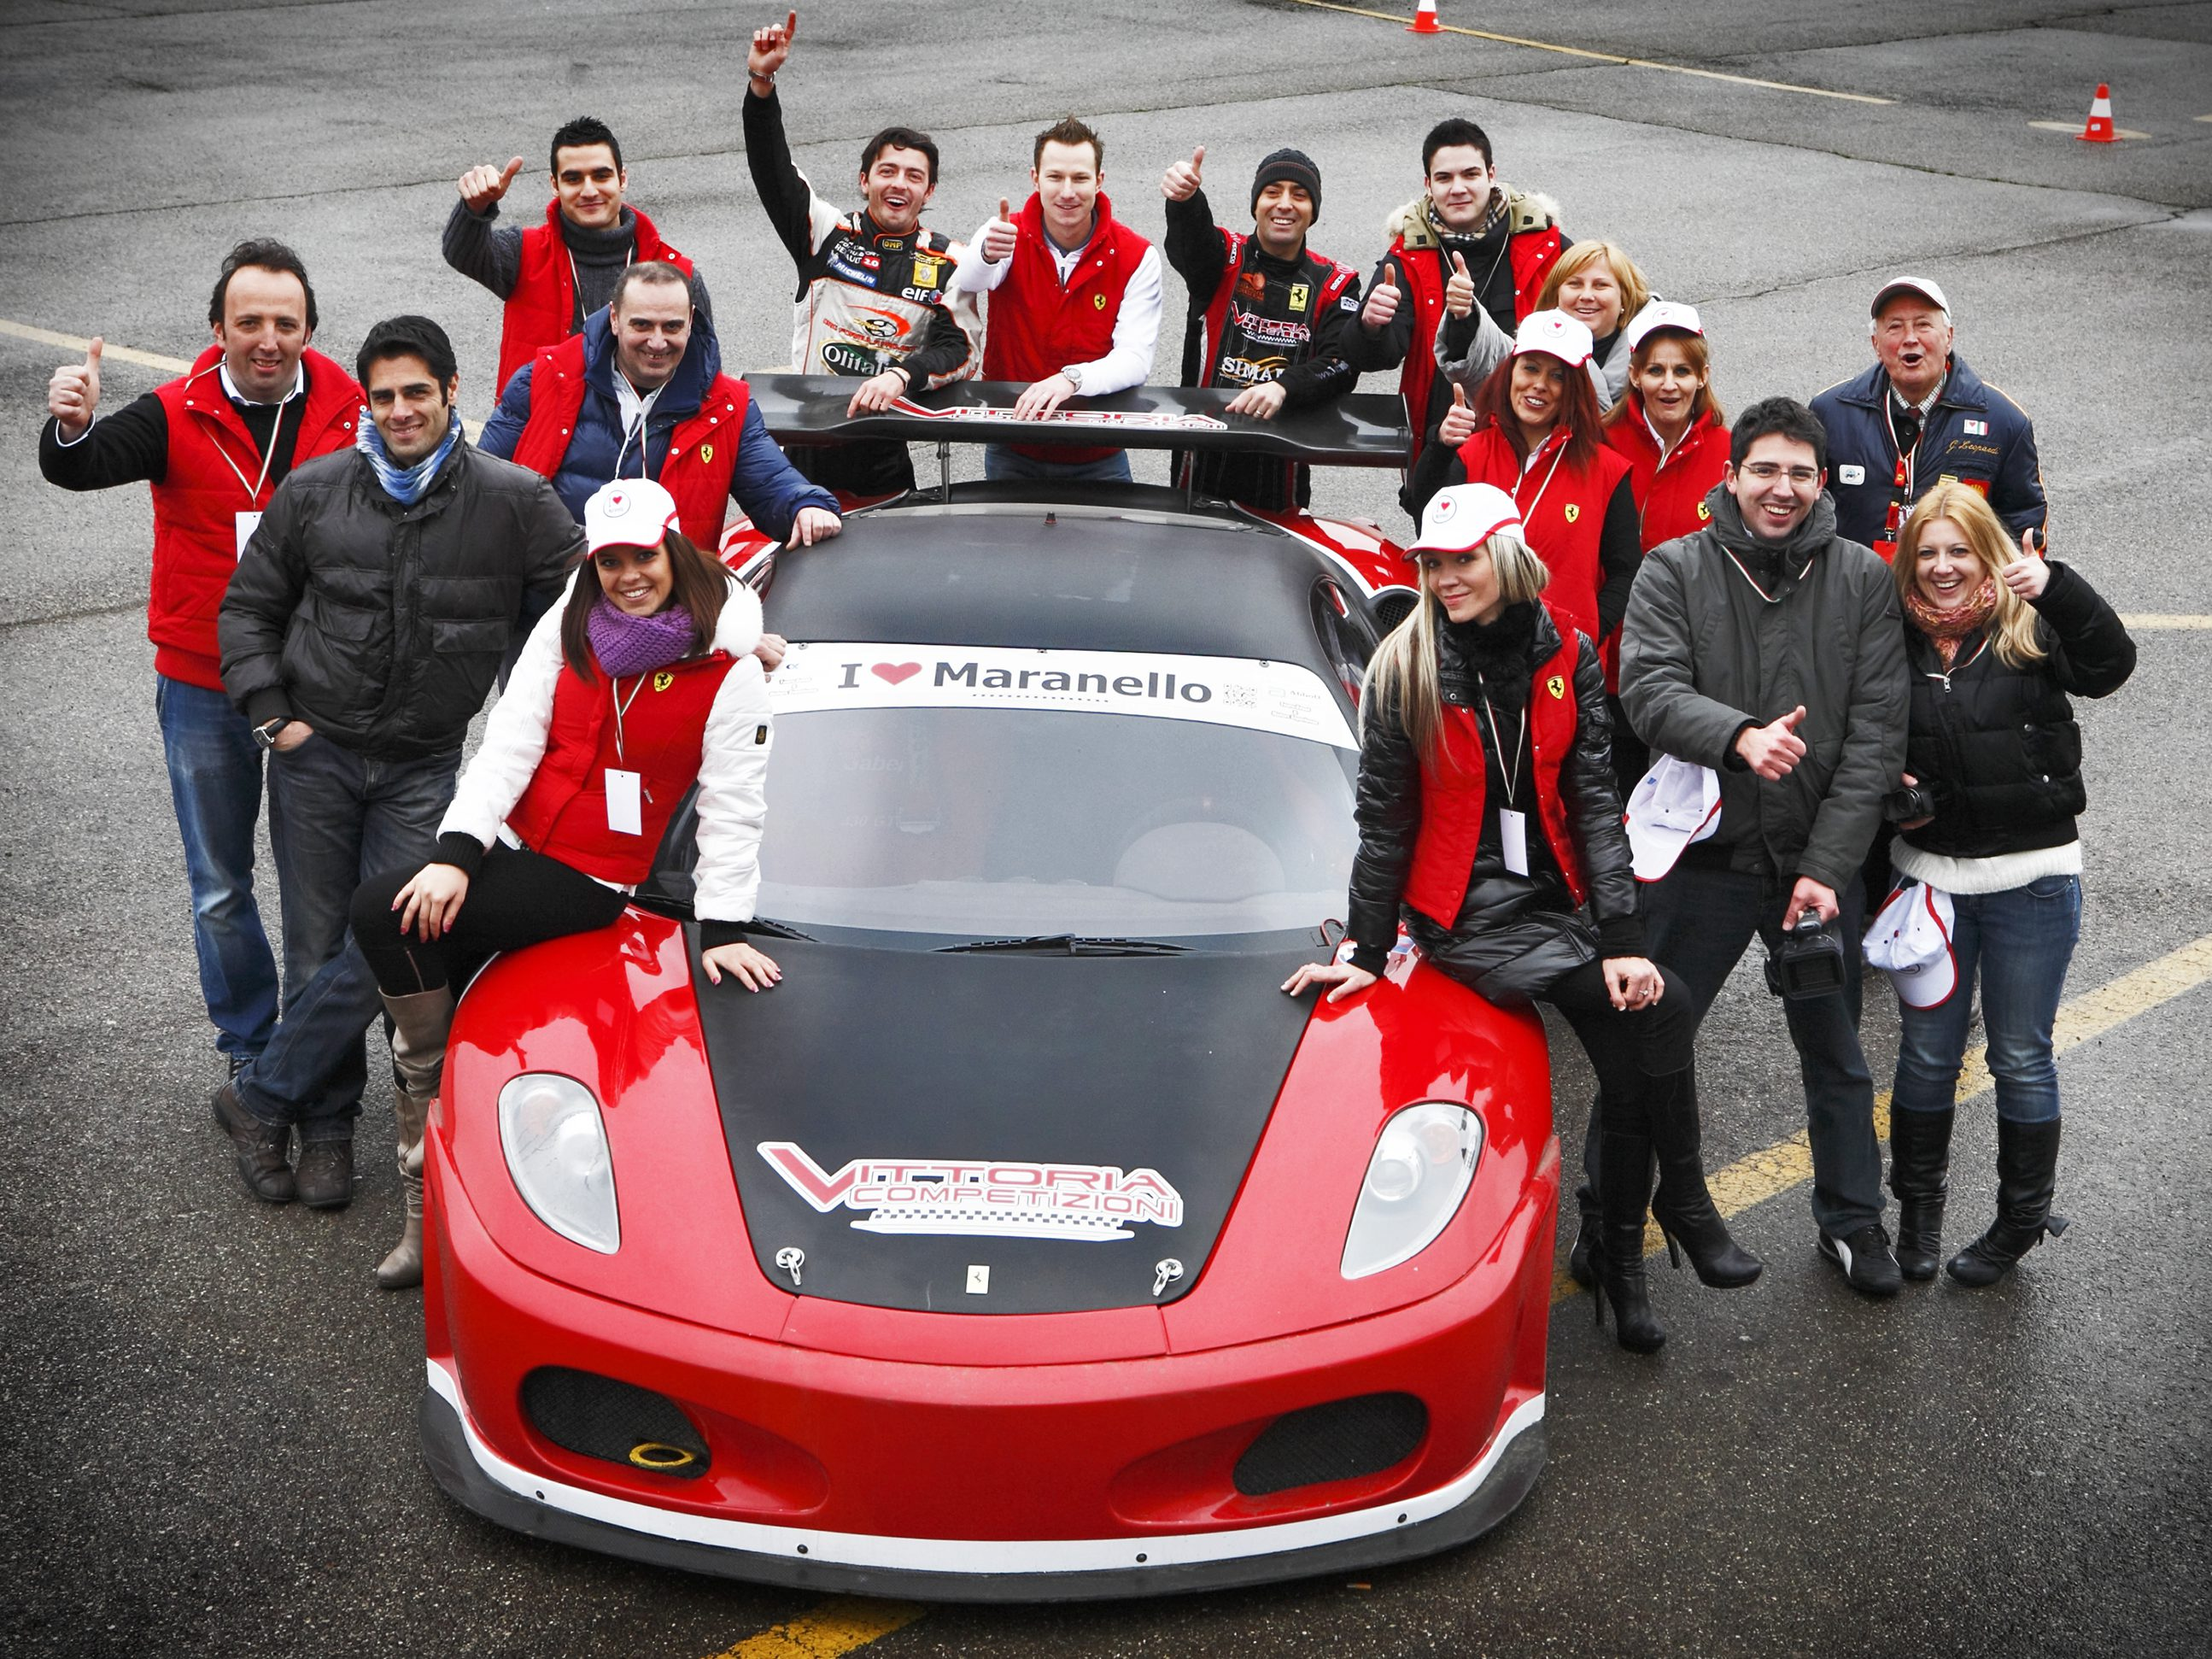 Team_ILoveMaranello